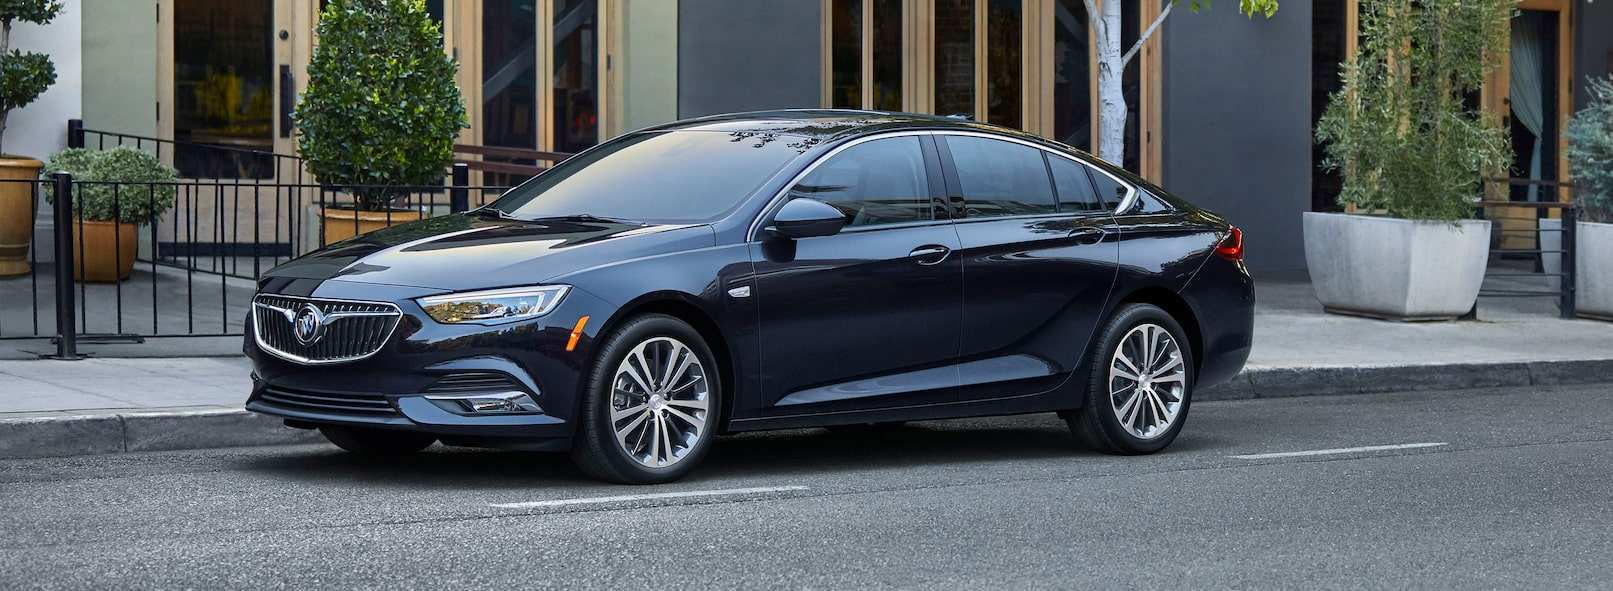 81 The Best 2019 Buick LaCrosse Engine